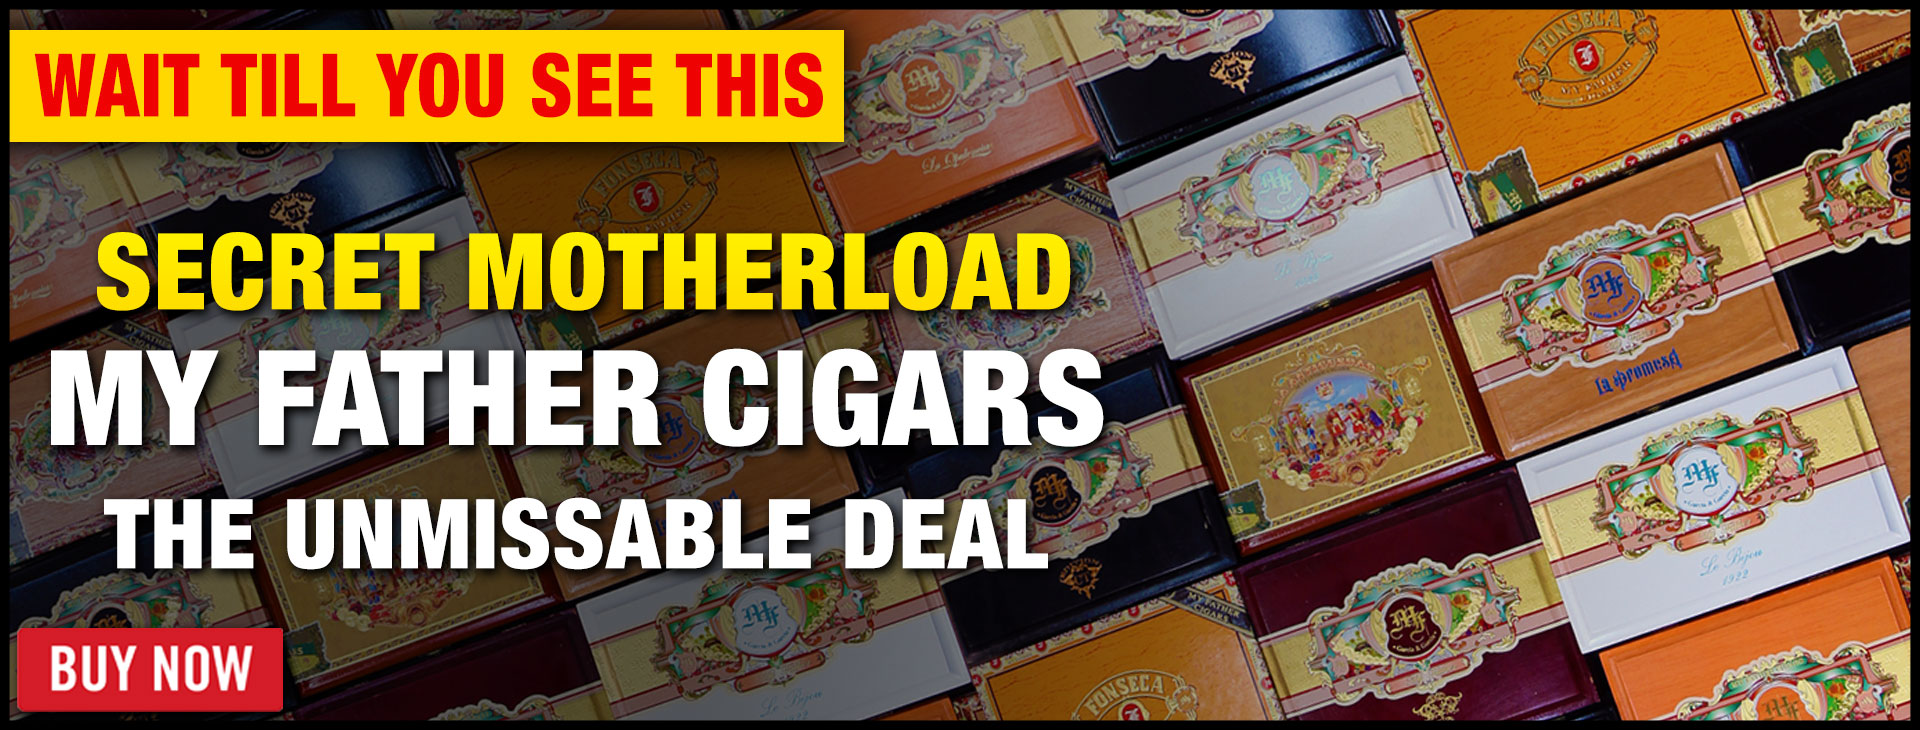 my-father-cigars-2021-banner-motherload.jpg